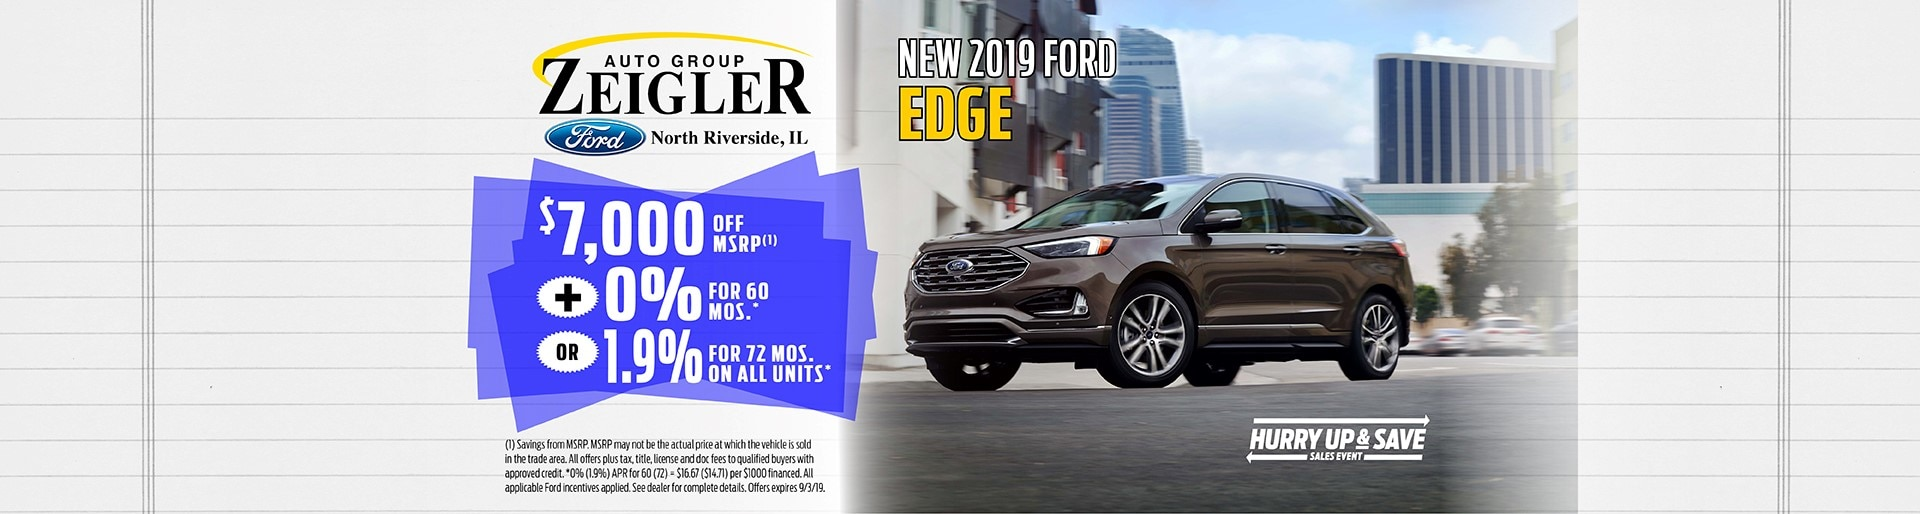 Zeigler Ford Of North Riverside New Used Chicagoland Ford Dealer